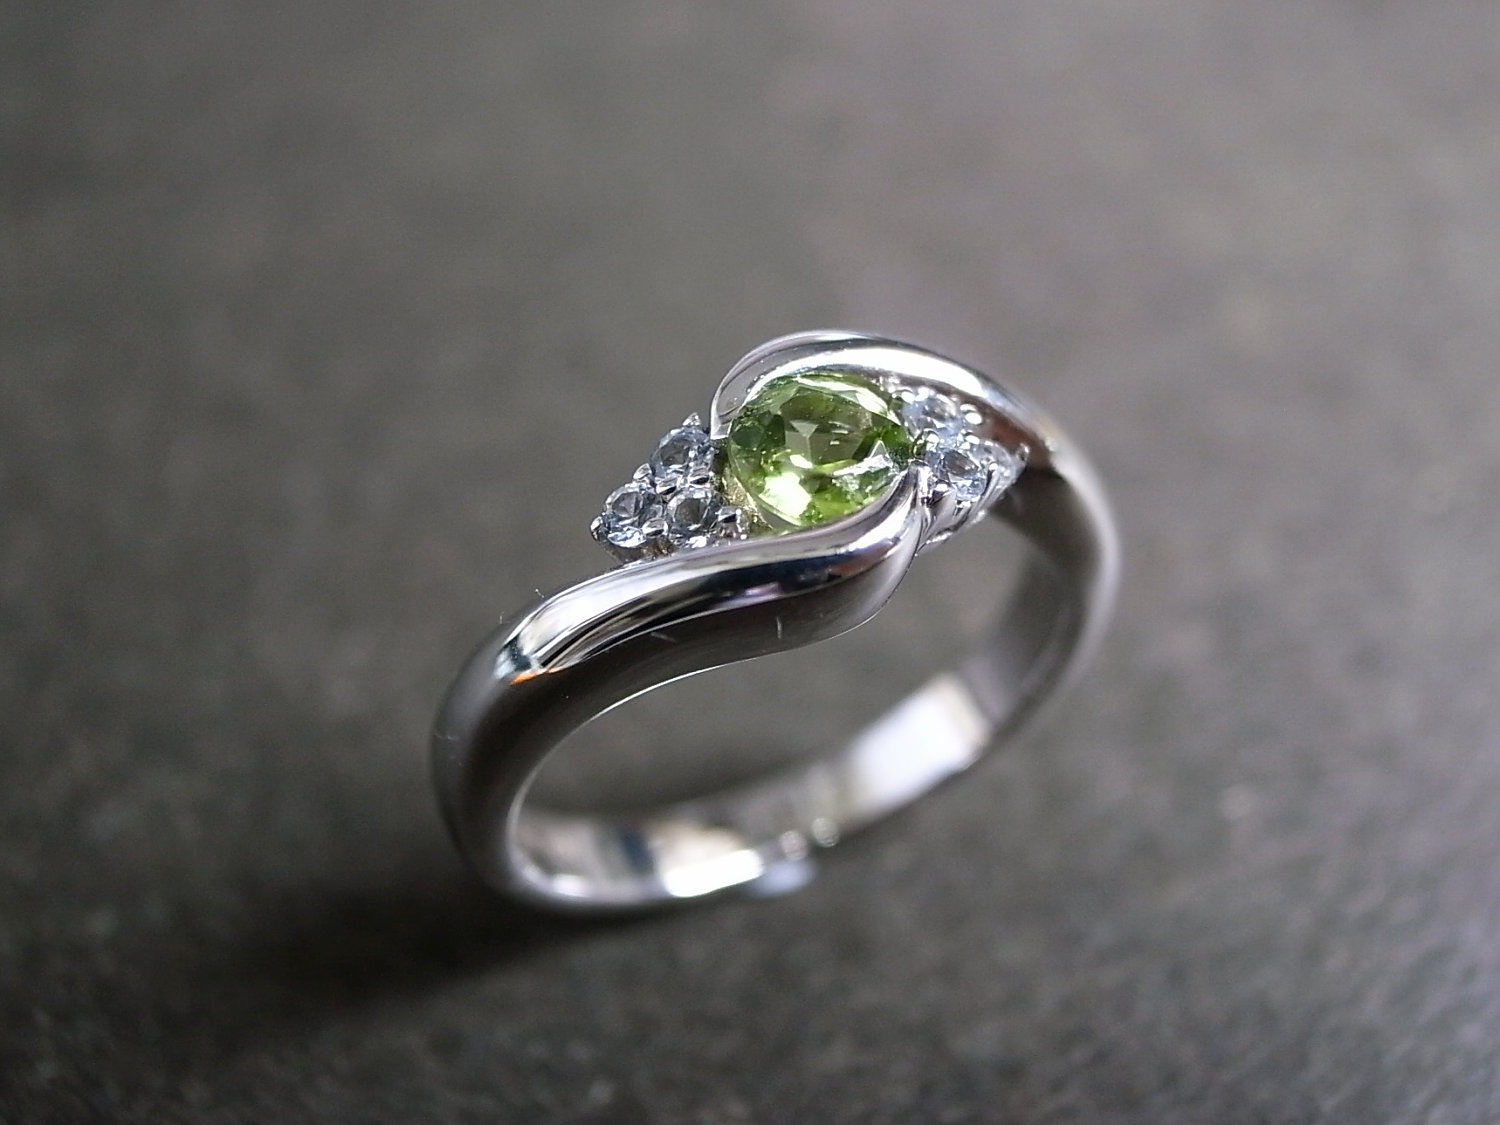 diamond cut sterling ct to kay hover zoom wedding round mv ring silver en zm tw kaystore green rings